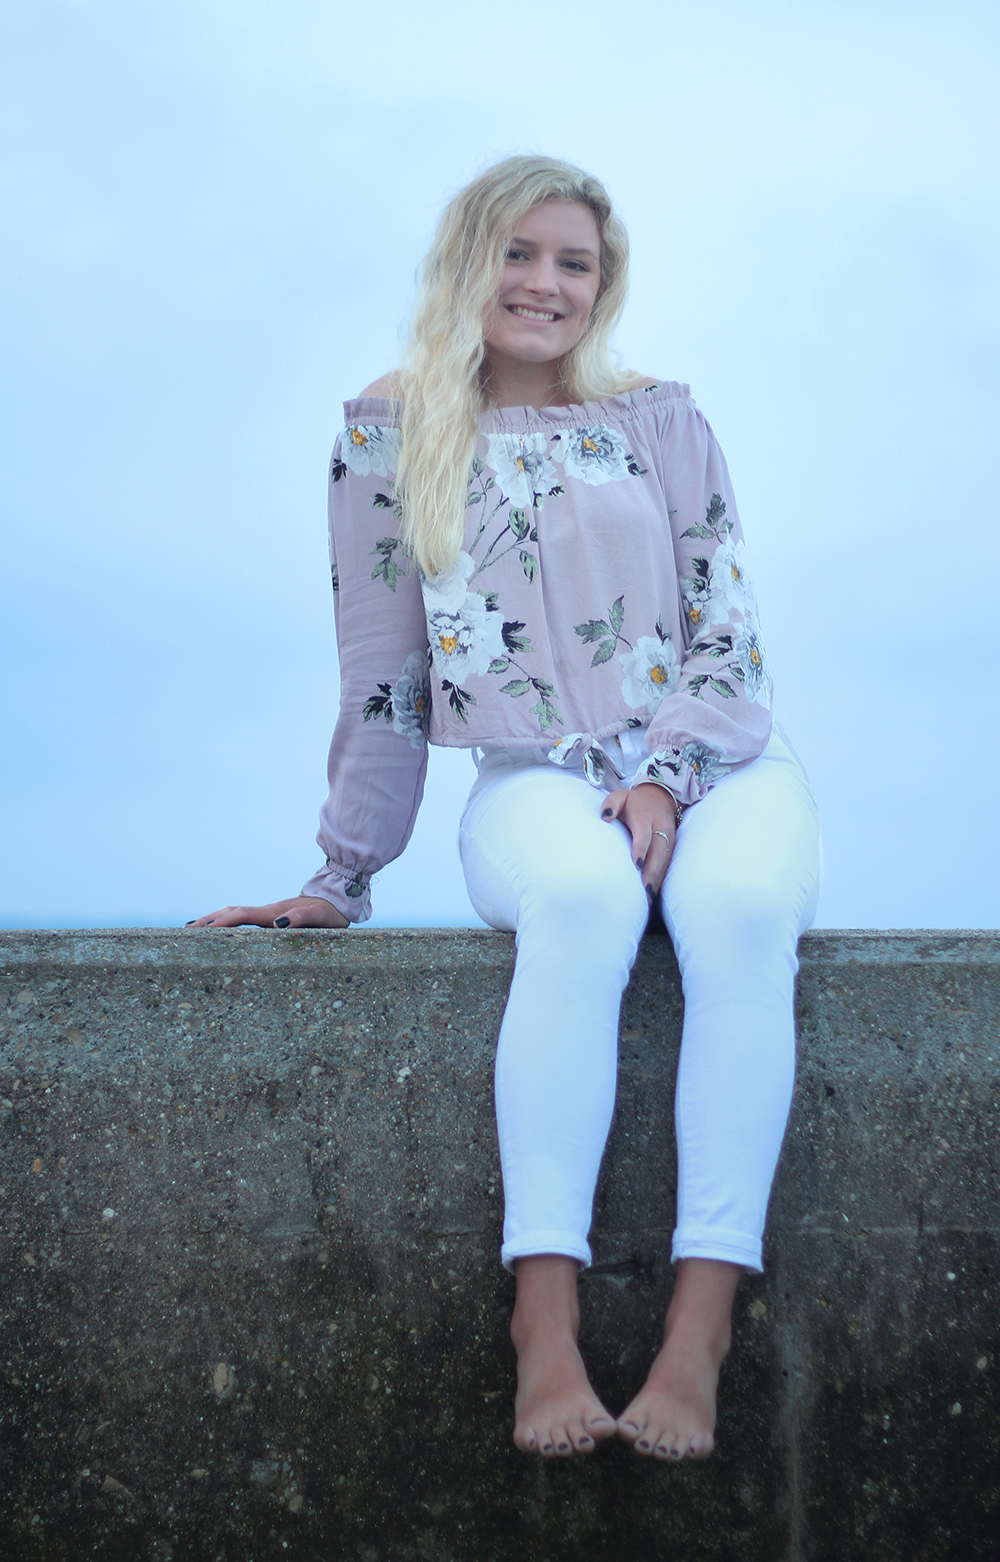 Samantha Jones Frankfort pier Frankfort lighthouse Frankfort michigan picture senior photos aubrey ann parker photography Lake Michigan beach